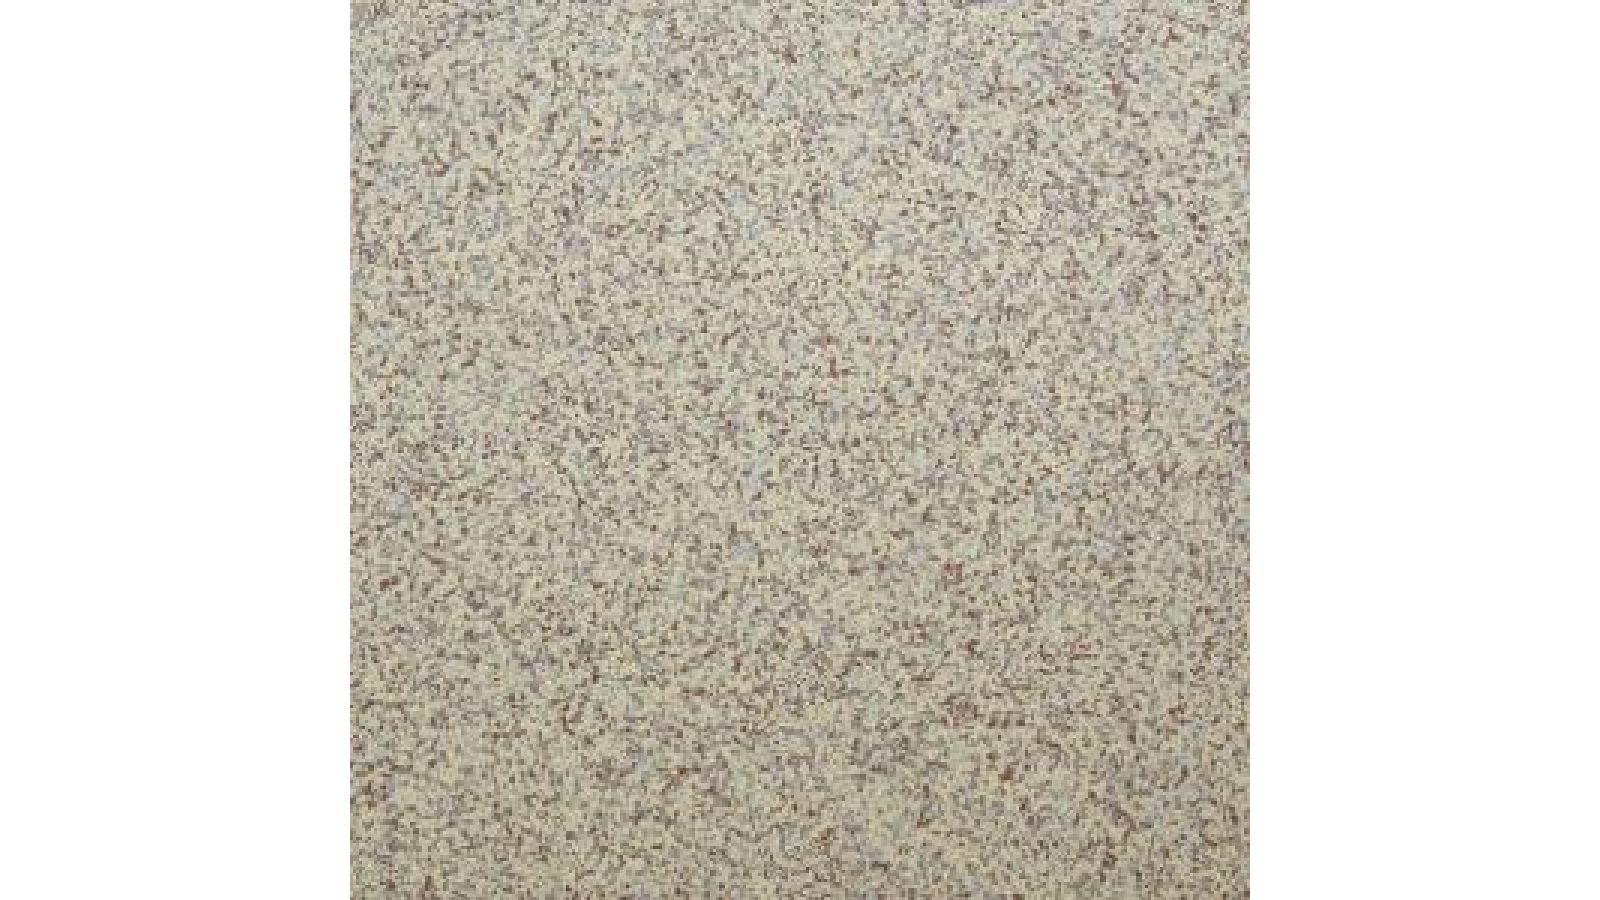 Atmosphere Recycled Rubber Flooring TM962 Fraction